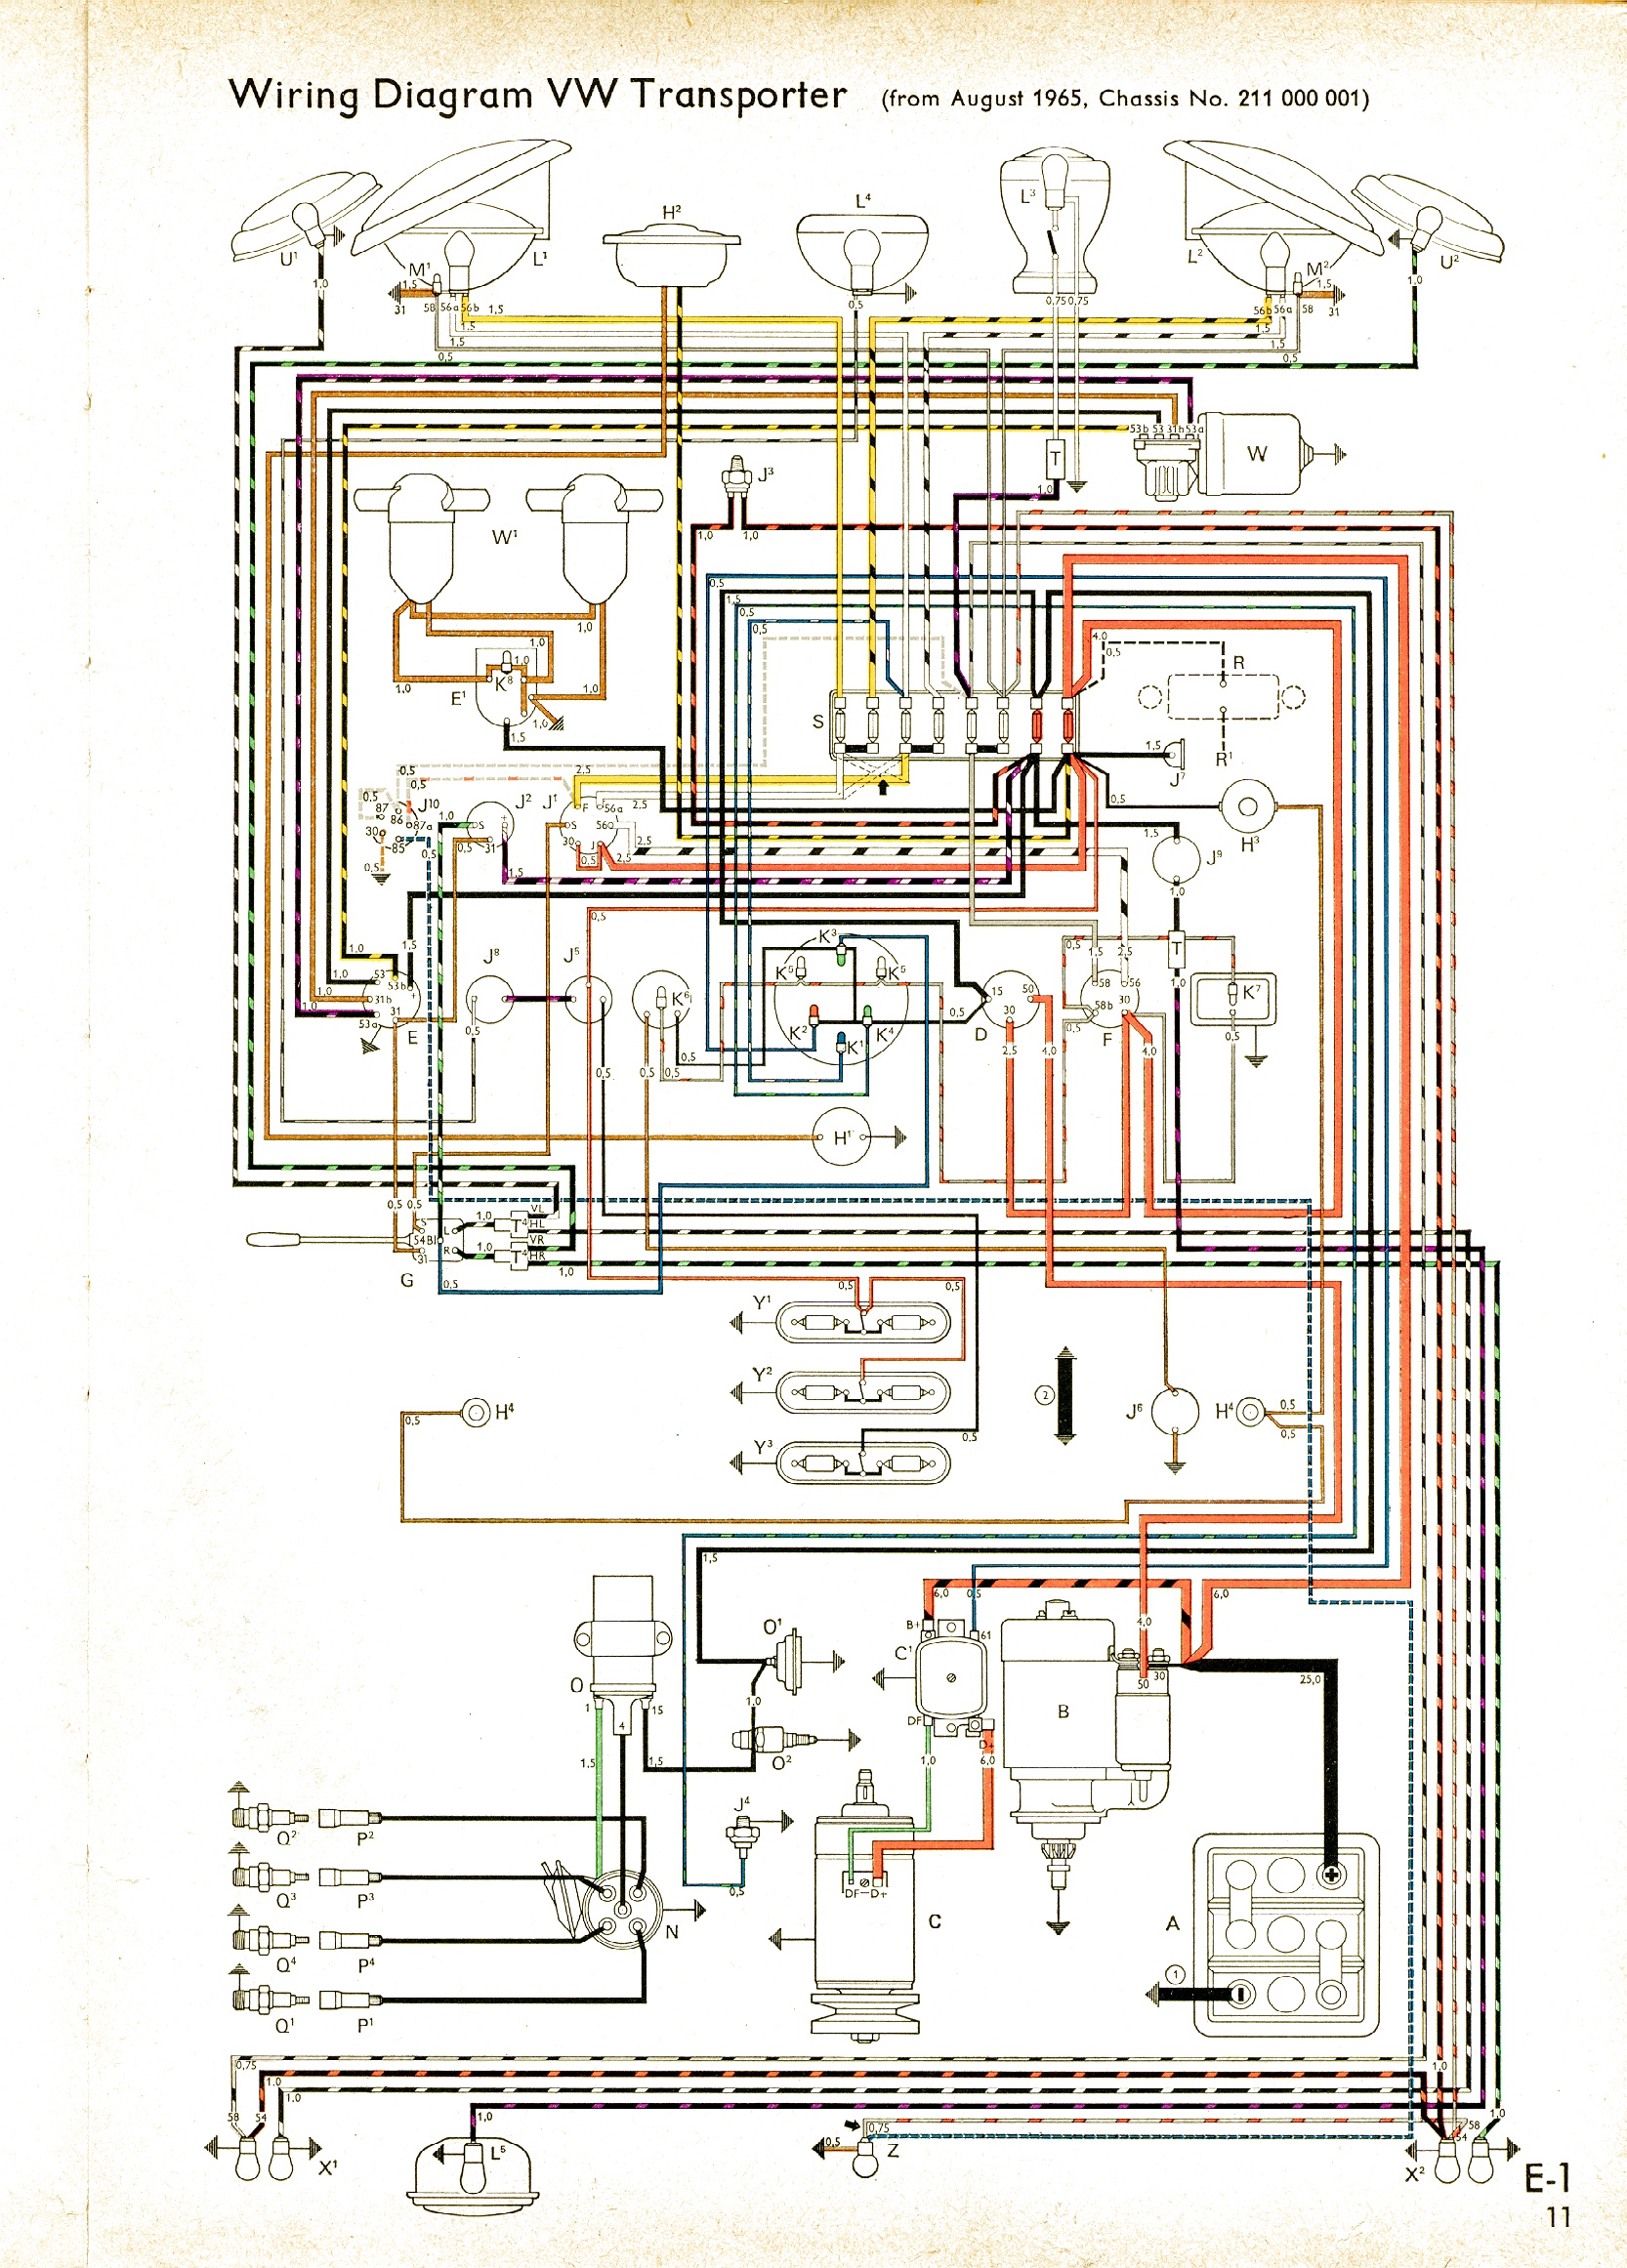 bus 65 vintagebus com vw bus (and other) wiring diagrams vw polo wiring diagram download at gsmx.co